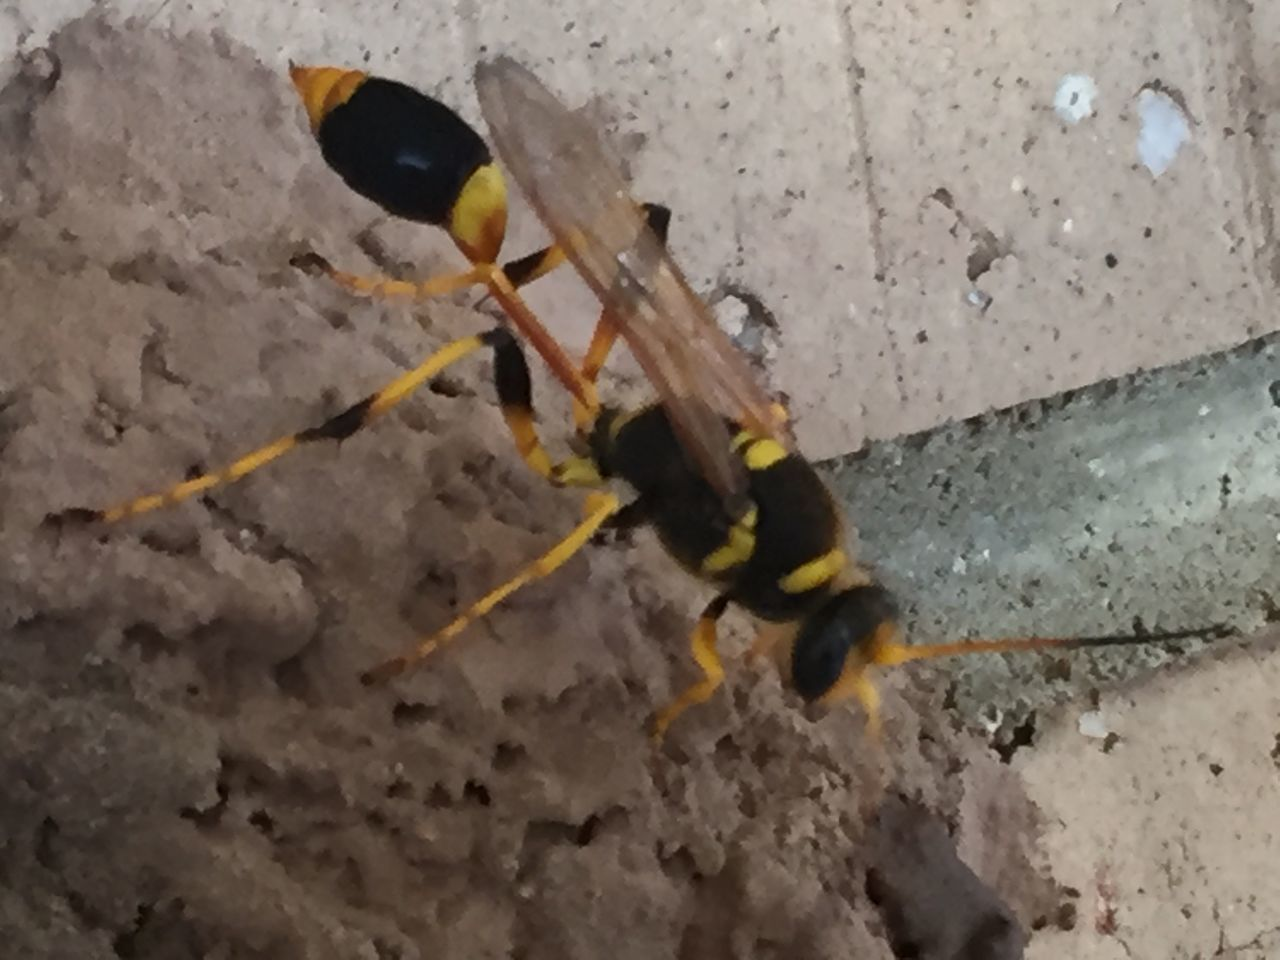 Making A Home Wasps Nest Wasp Black And Yellow  BANDED  Sting Mud Nest Insect Wings